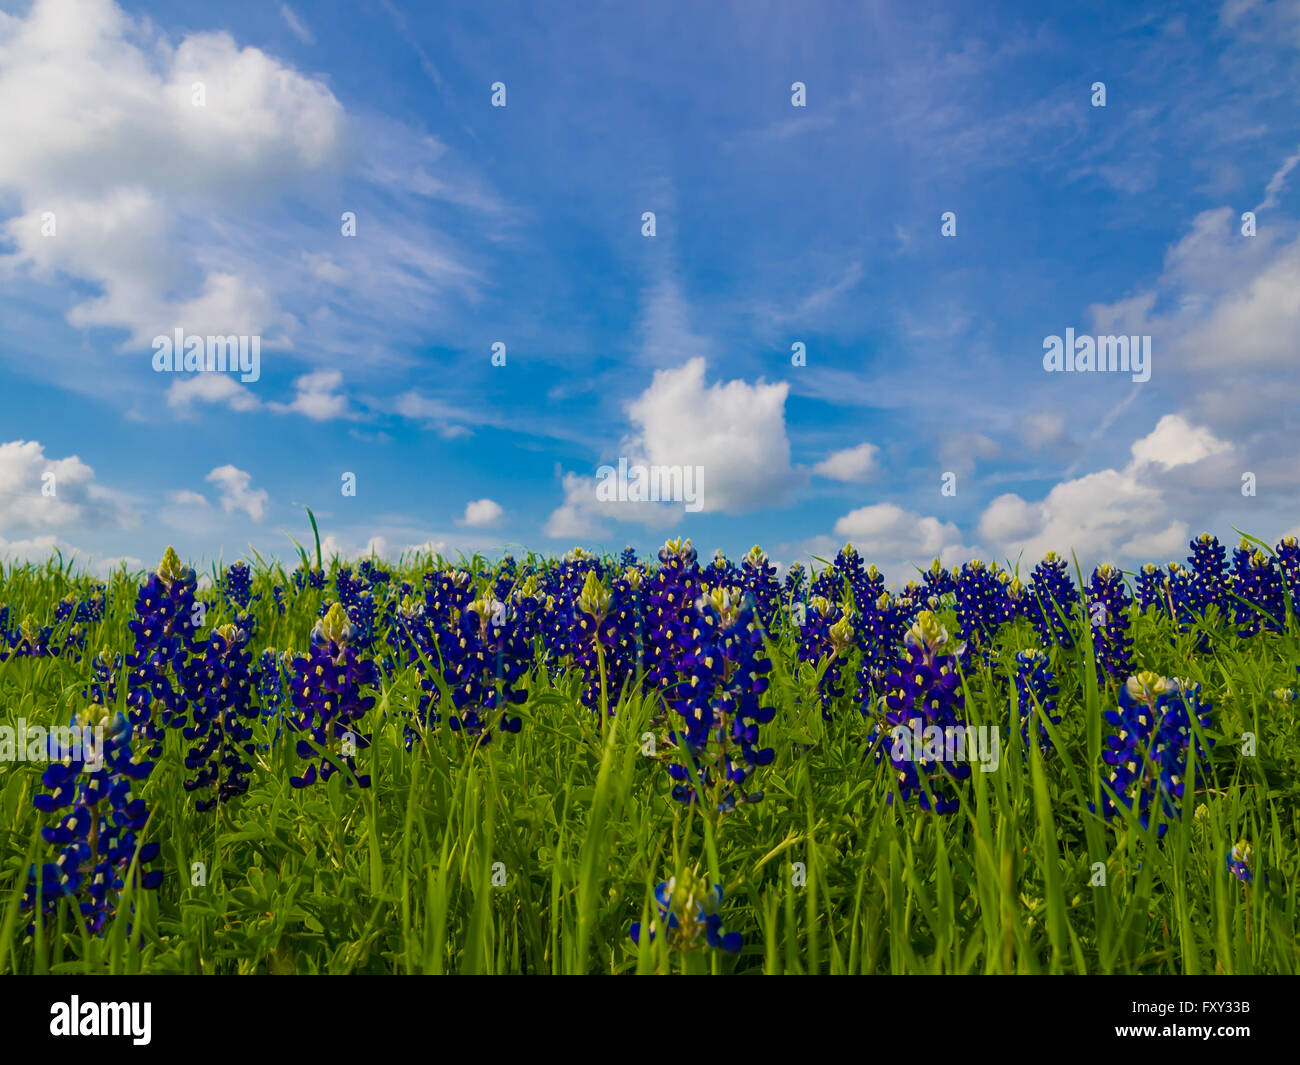 Puffy Flower Stock Photos Puffy Flower Stock Images Alamy